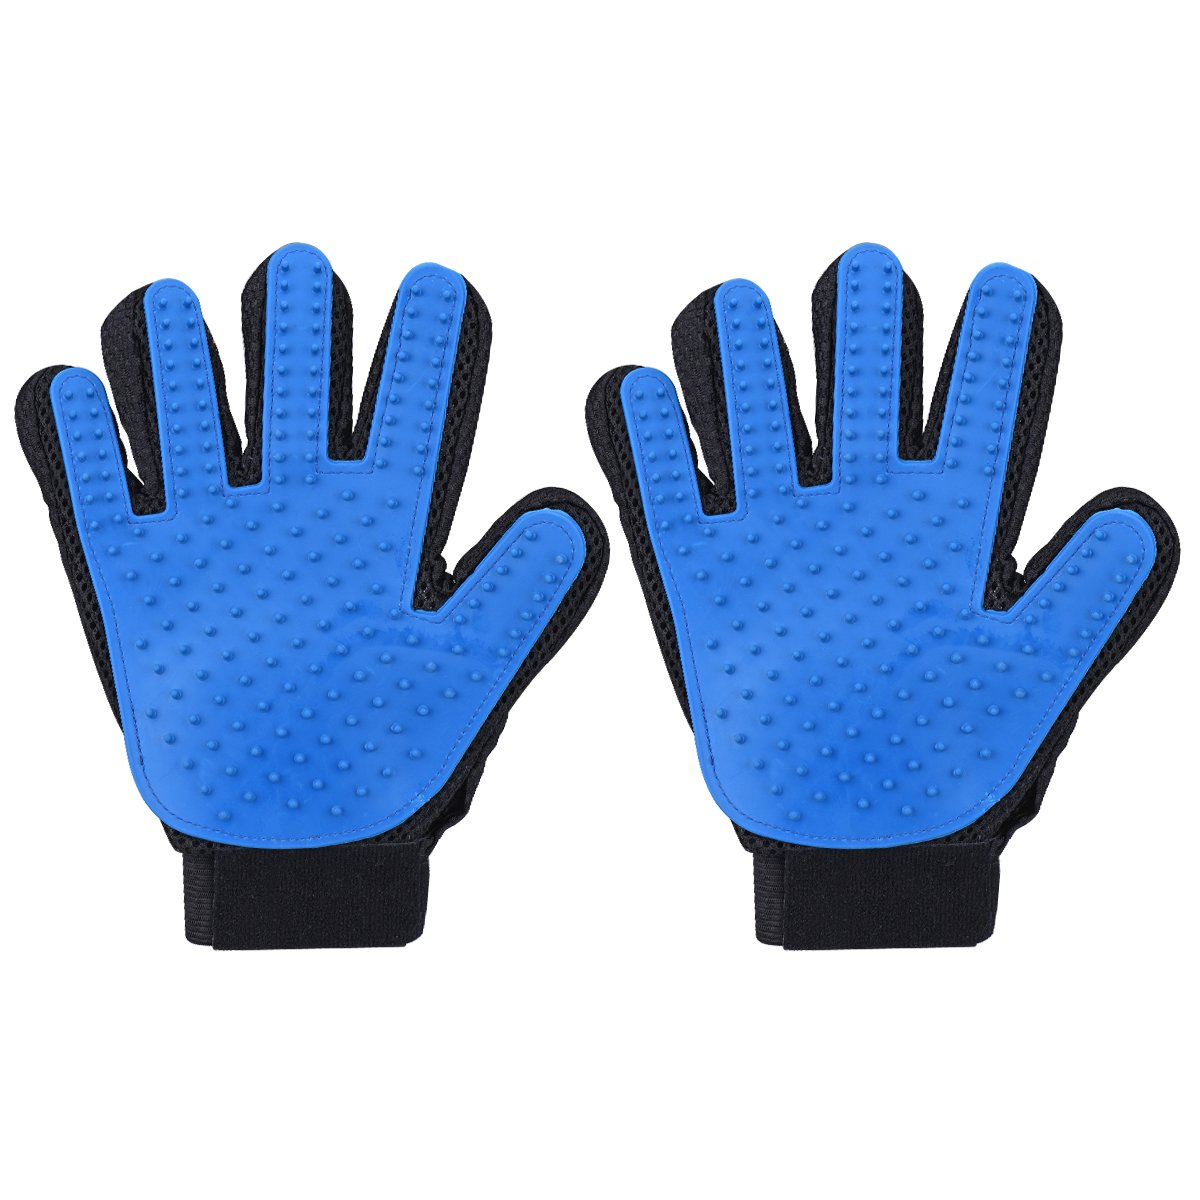 Cymas Pet Grooming Glove, Deshedding Brush Glove, Gentle Massaging Tool for Pets, for Cat or Dog with Long & Short Fur (Right-Handed Only, 2 Pack)